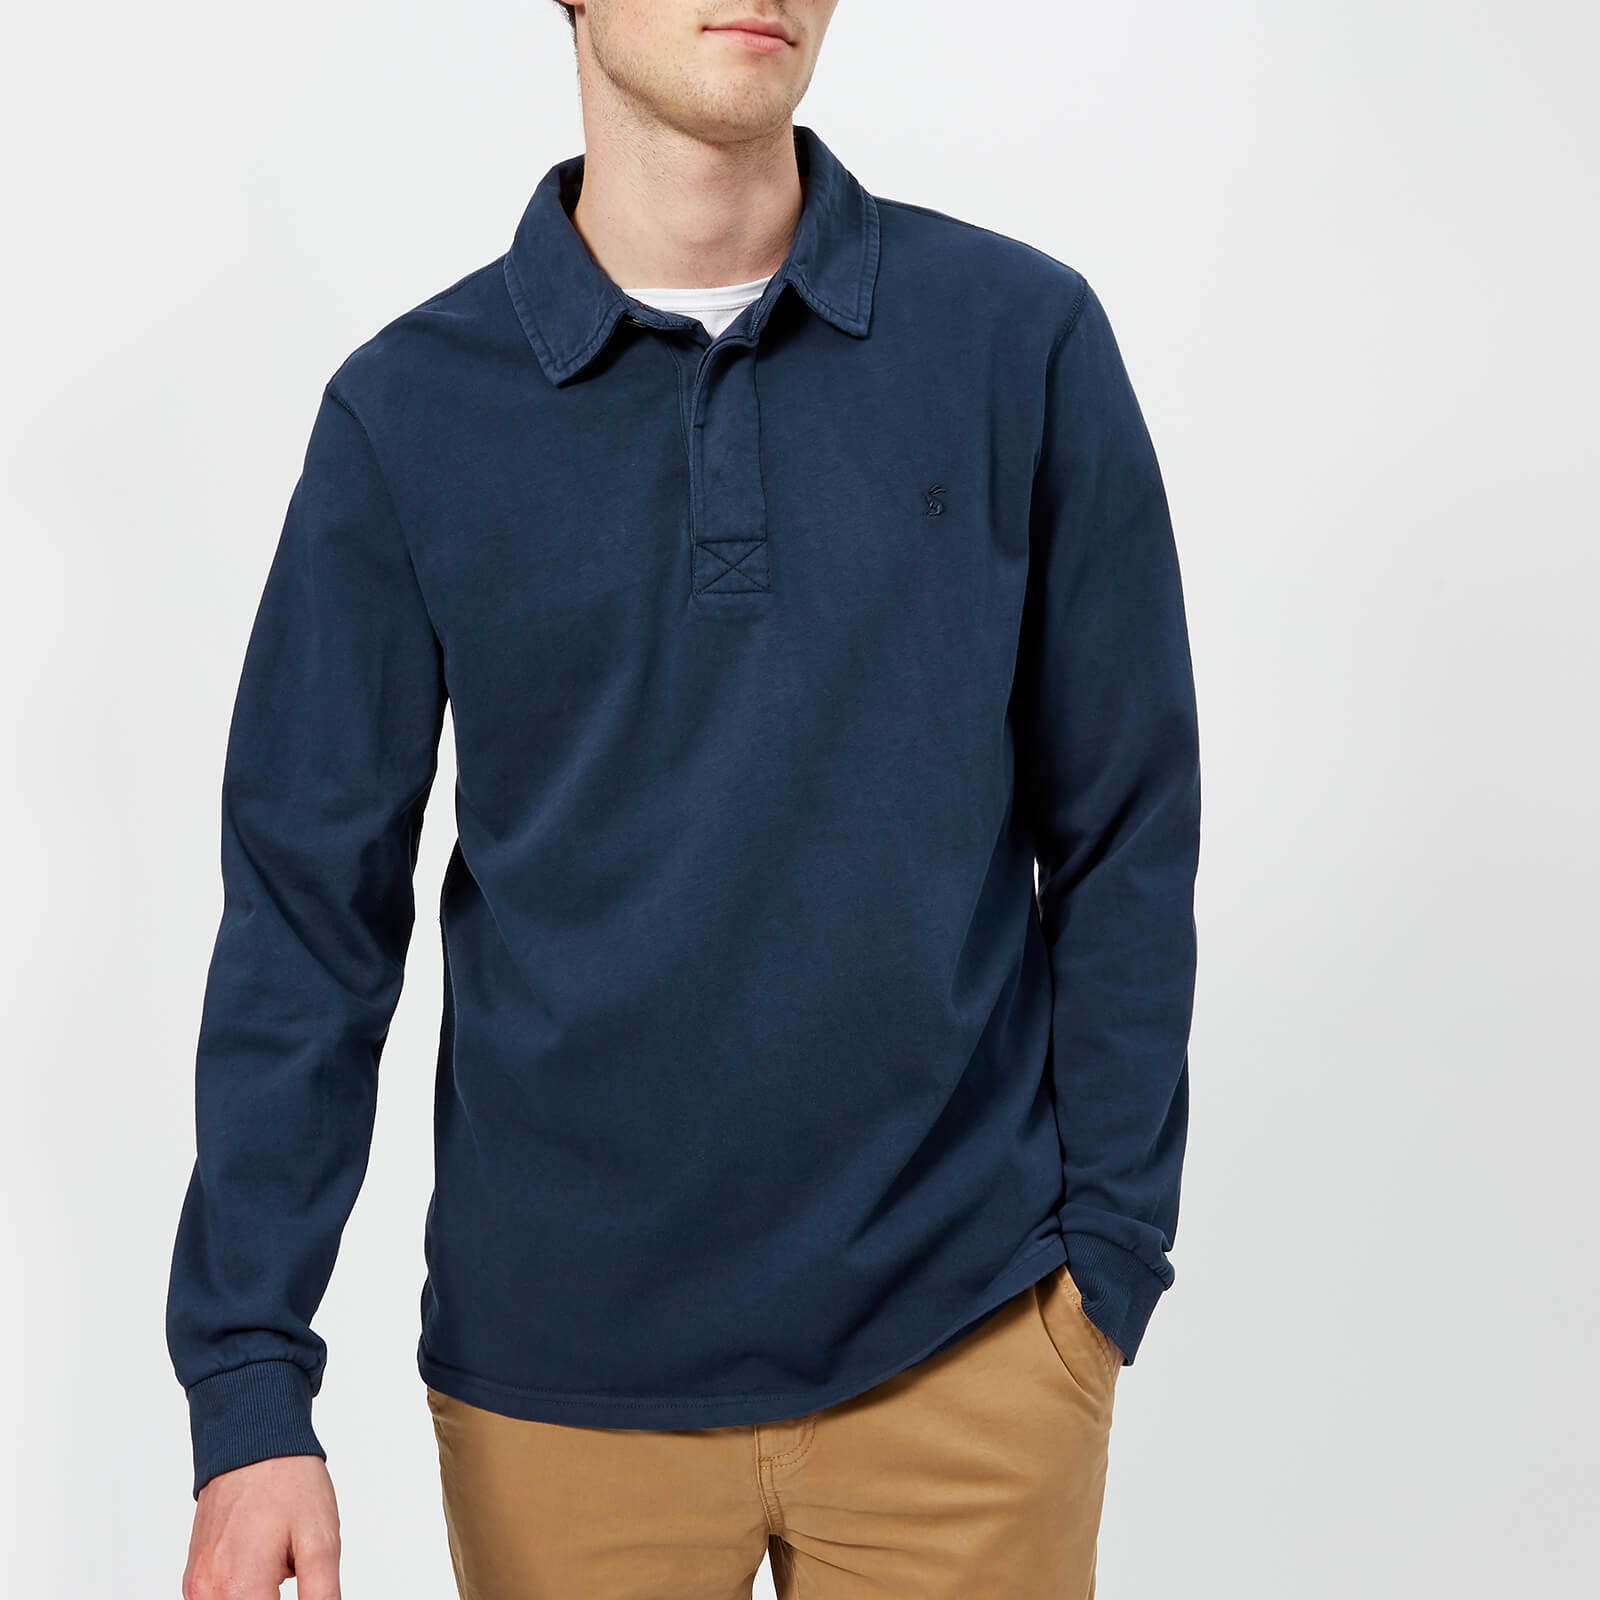 03365fe0549 Joules Men's Parkside Rugby Shirt - French Navy Mens Clothing   TheHut.com